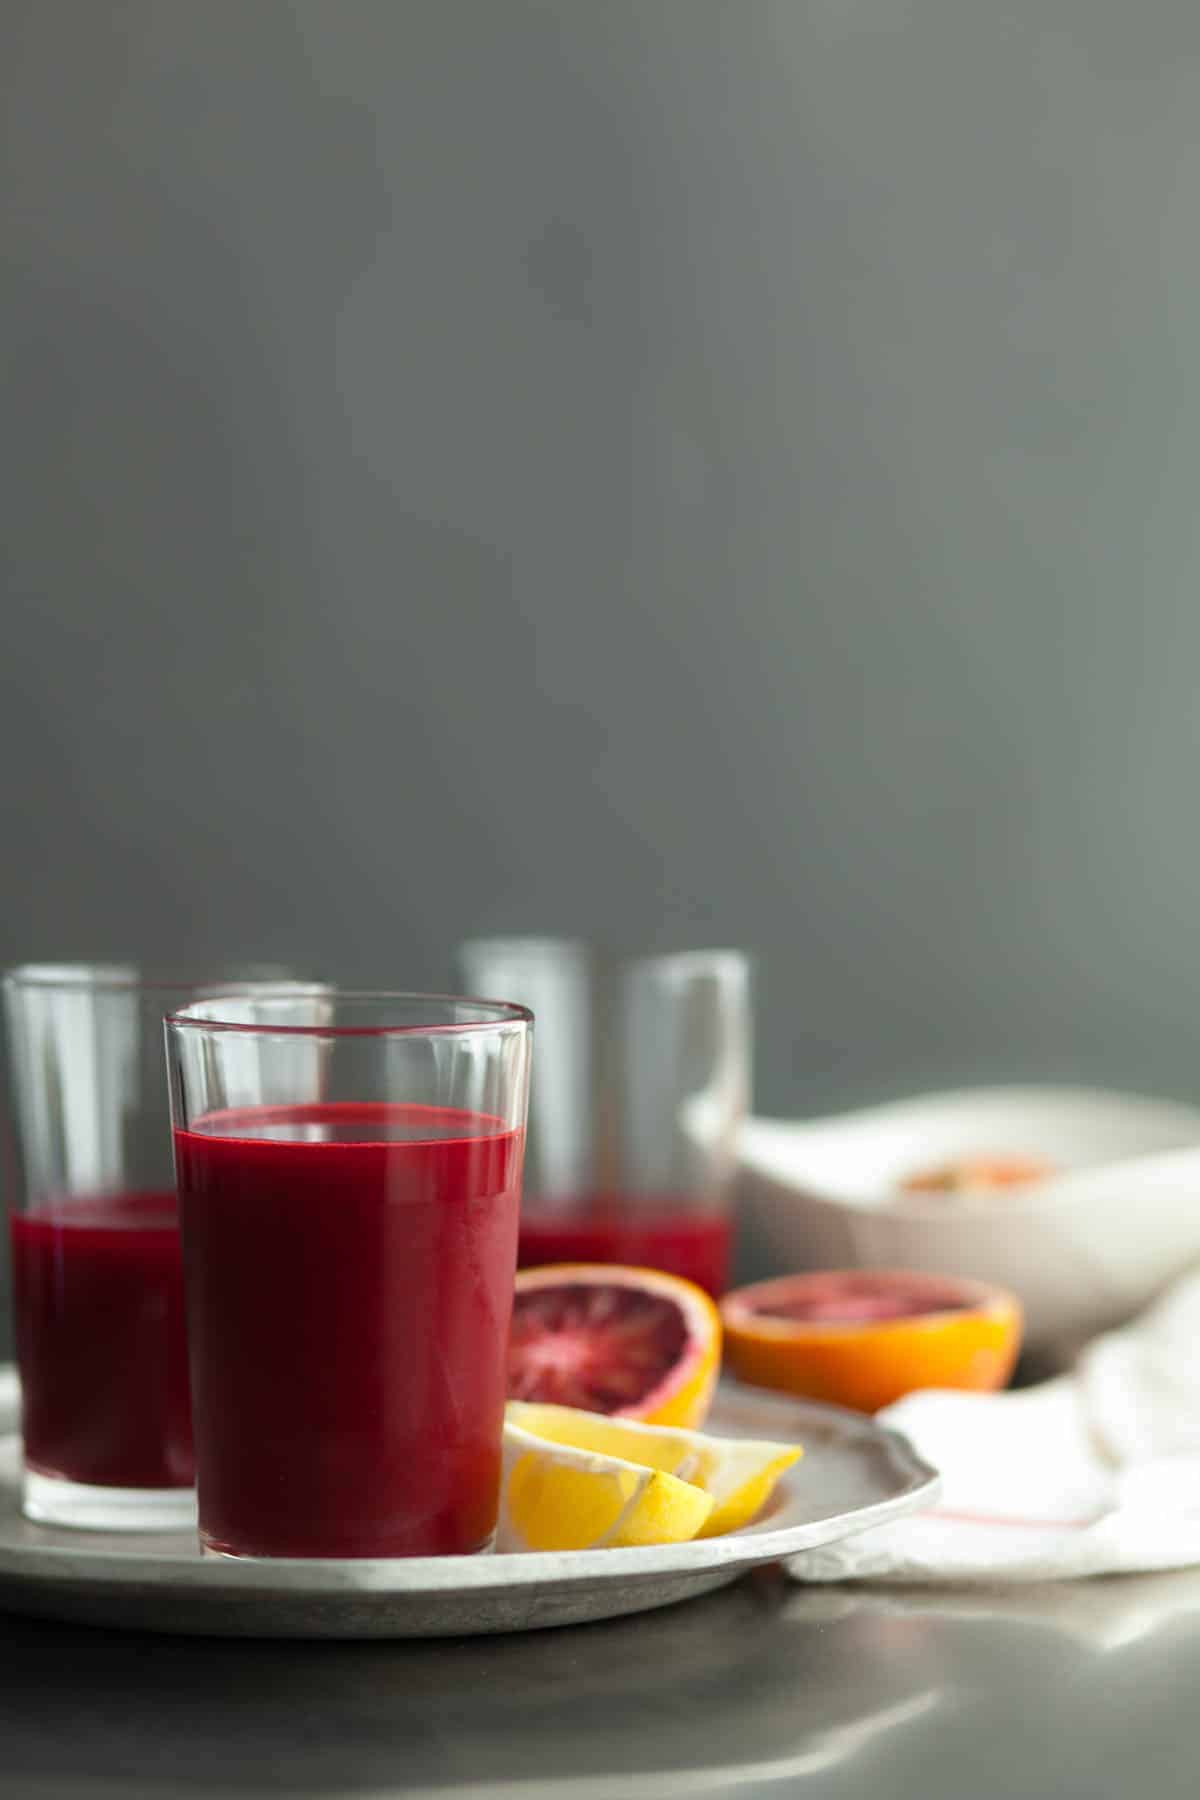 kitchen.com where can i buy a kitchen table homemade skin cream healthy series part 1 gourmande in rejuvenating root juice carrot beet blood orange ginger turmeric